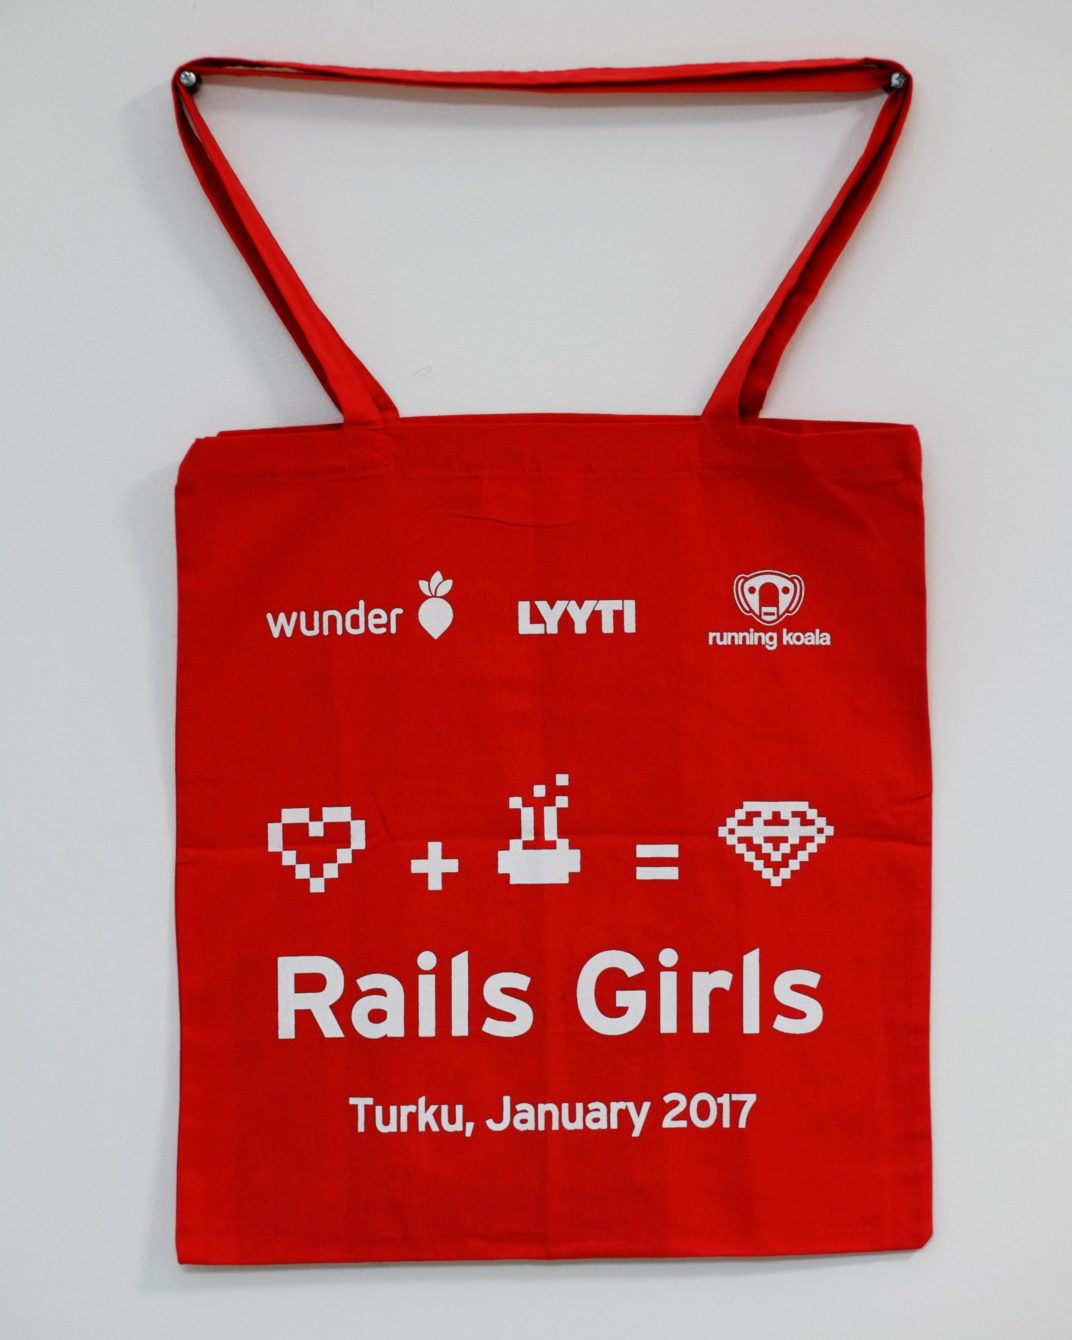 Canvas bag of Rails Girls event